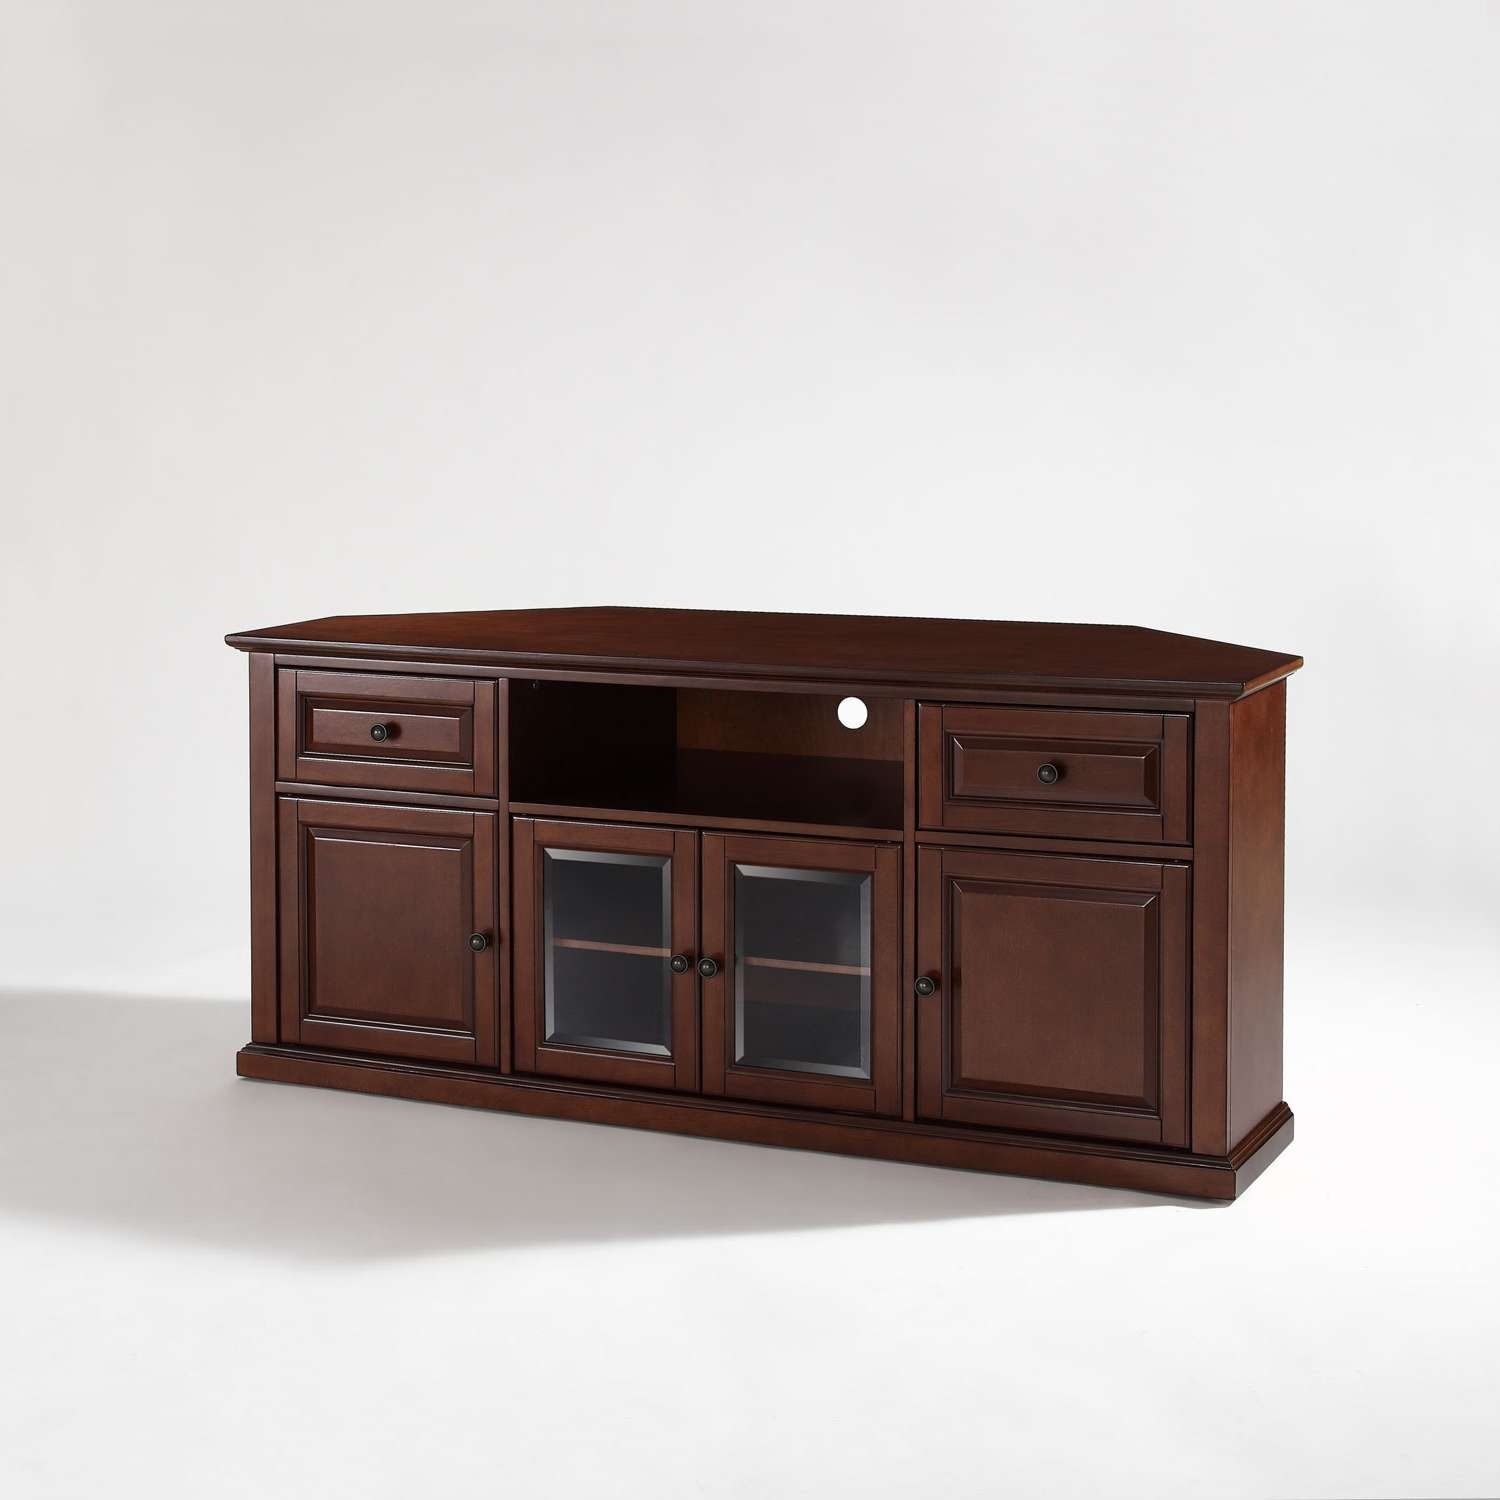 60 Inch Corner Tv Stand In Vintage Mahogany Crosley Furniture Throughout Tv Stands For Corners (View 6 of 15)